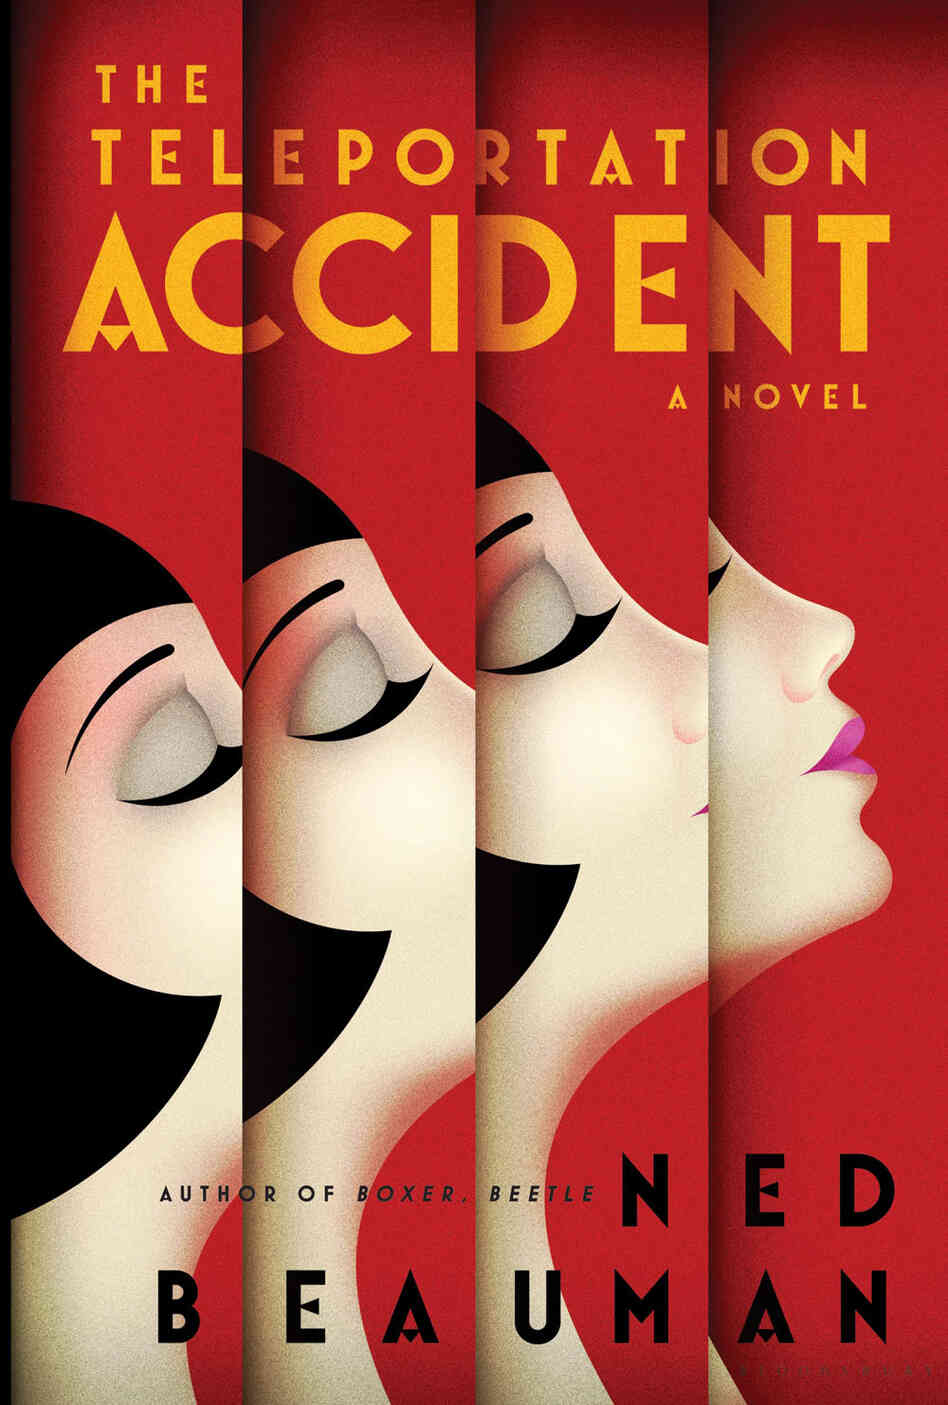 Book Cover Drawing Board ~ Book review the teleportation accident by ned beauman npr